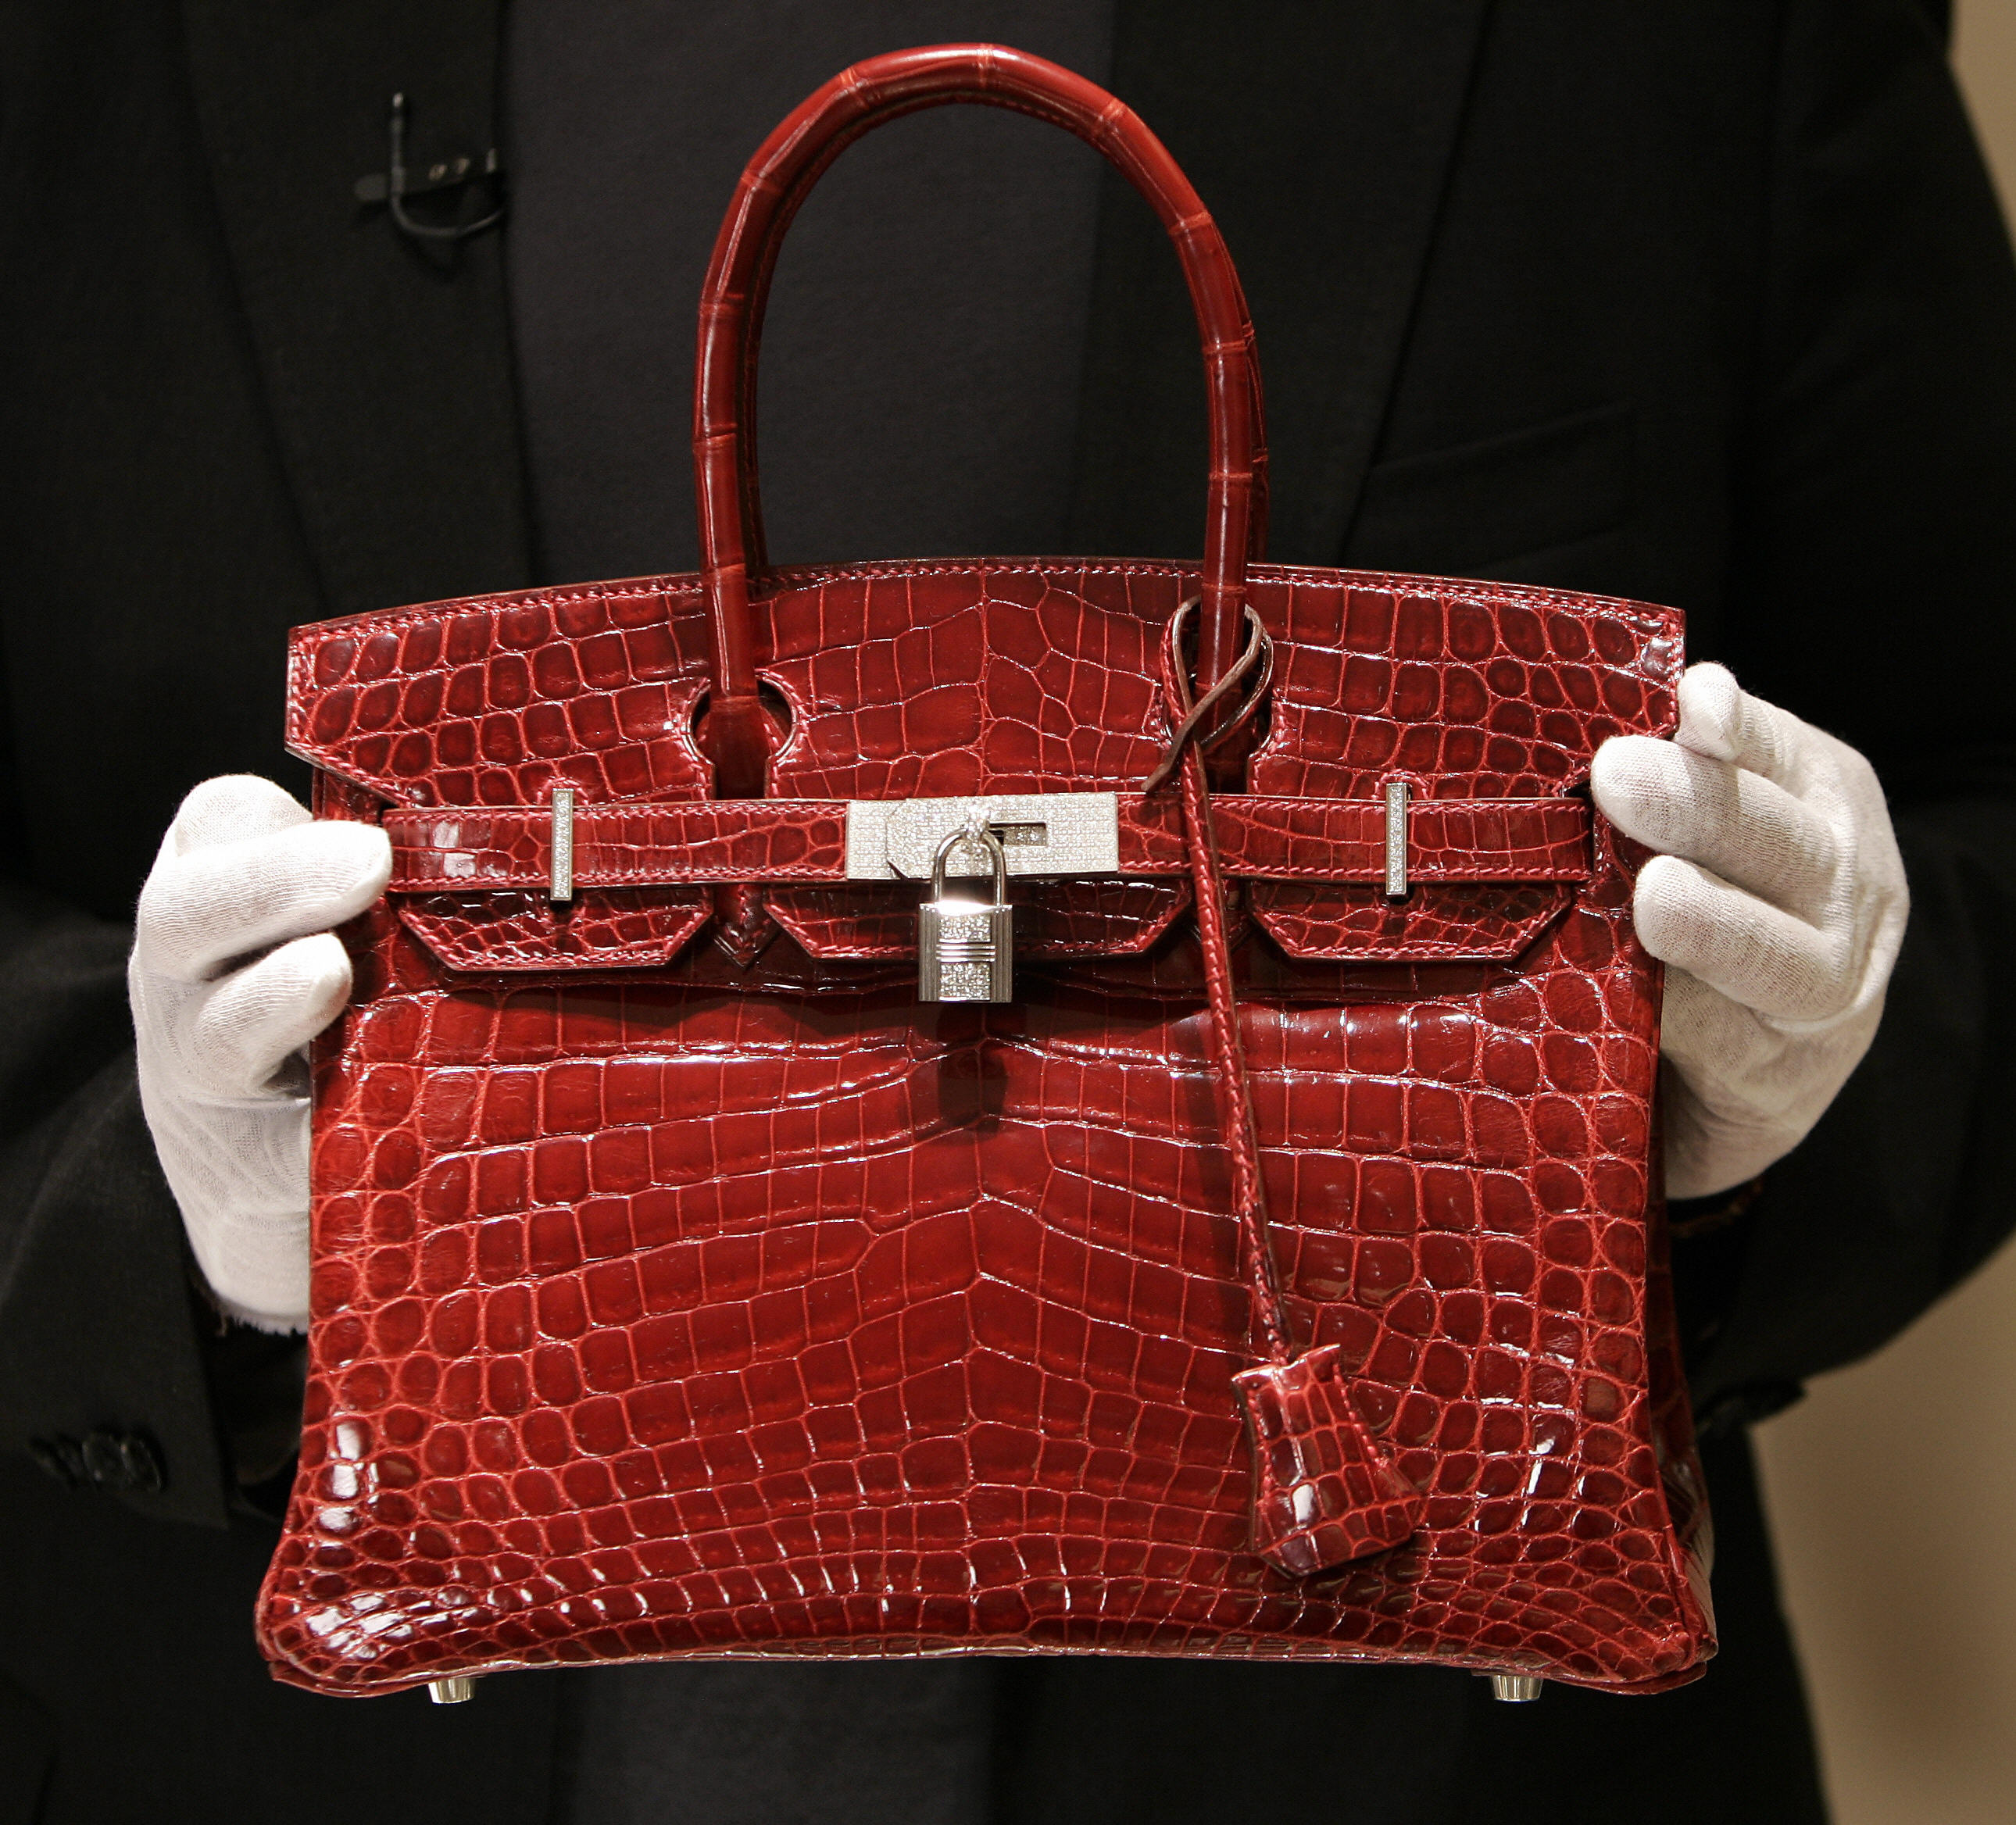 A employee holds a $129,000 crocodile Hermes Birkin Bag during a private opening for the new Hermes store on Wall Street in New York 21 June 2007.